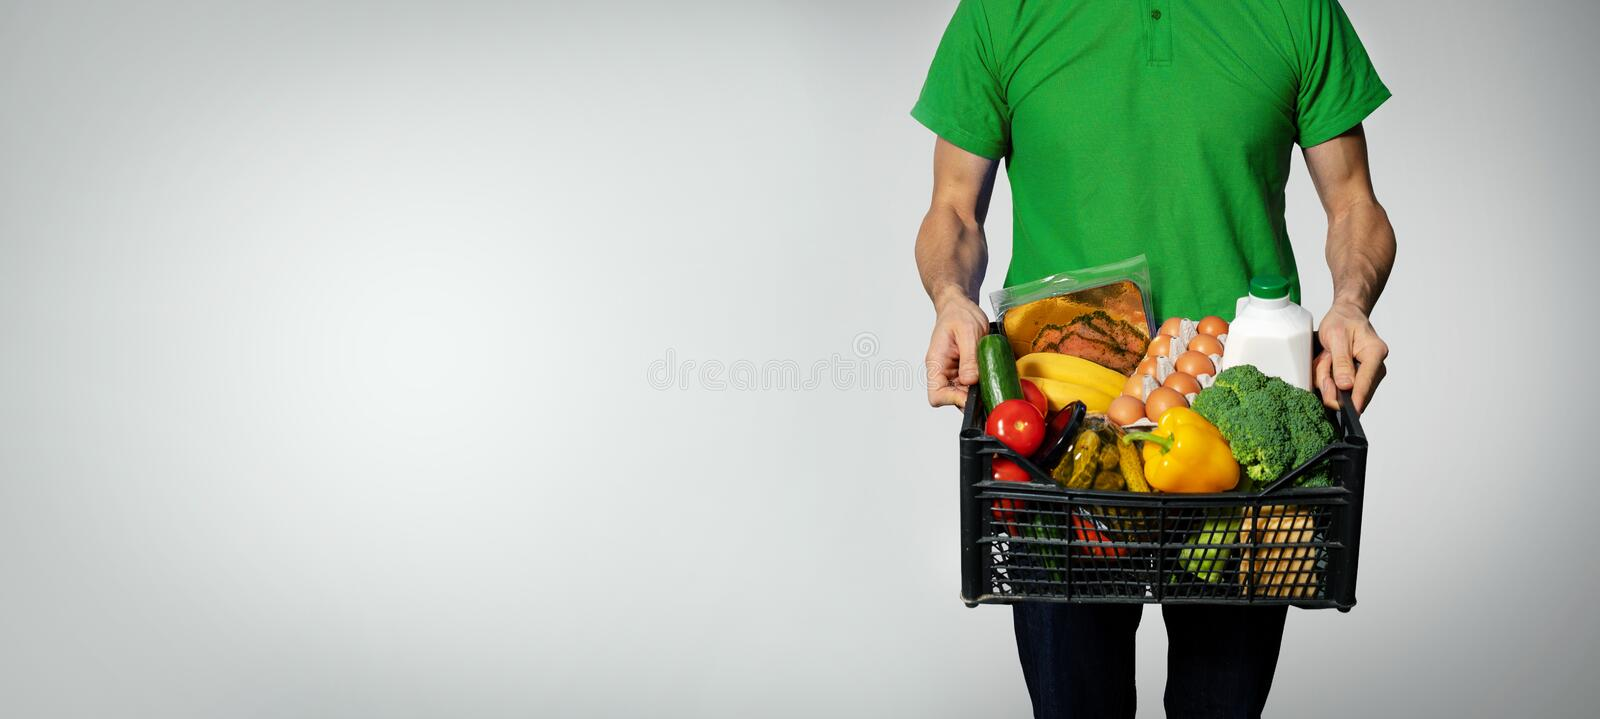 Food delivery service - man with groceries box in hands. Food delivery service - man with groceries box on gray background with copy space stock image